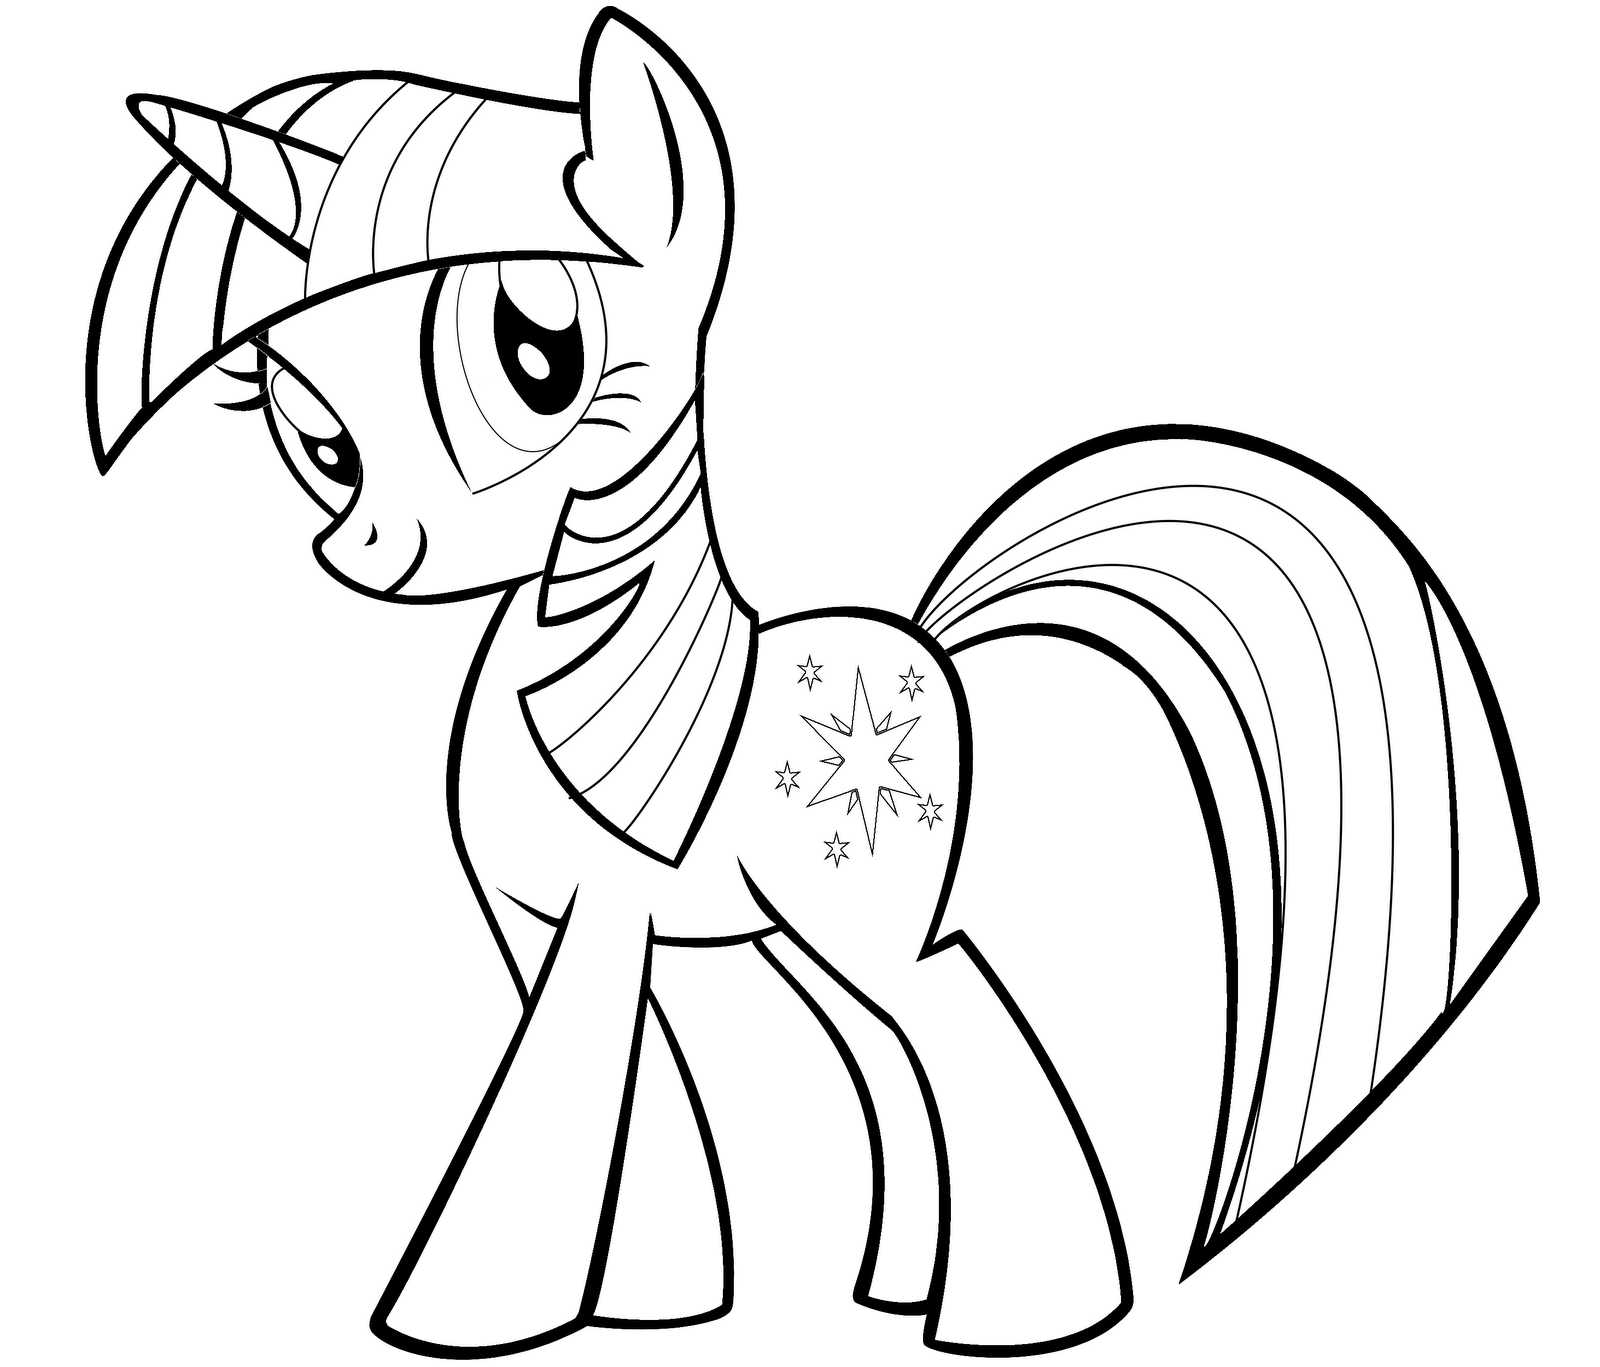 My Little Pony Twilight Sparkle Coloring Pages My Little Pony Coloring My Little Pony Twilight Pony Drawing